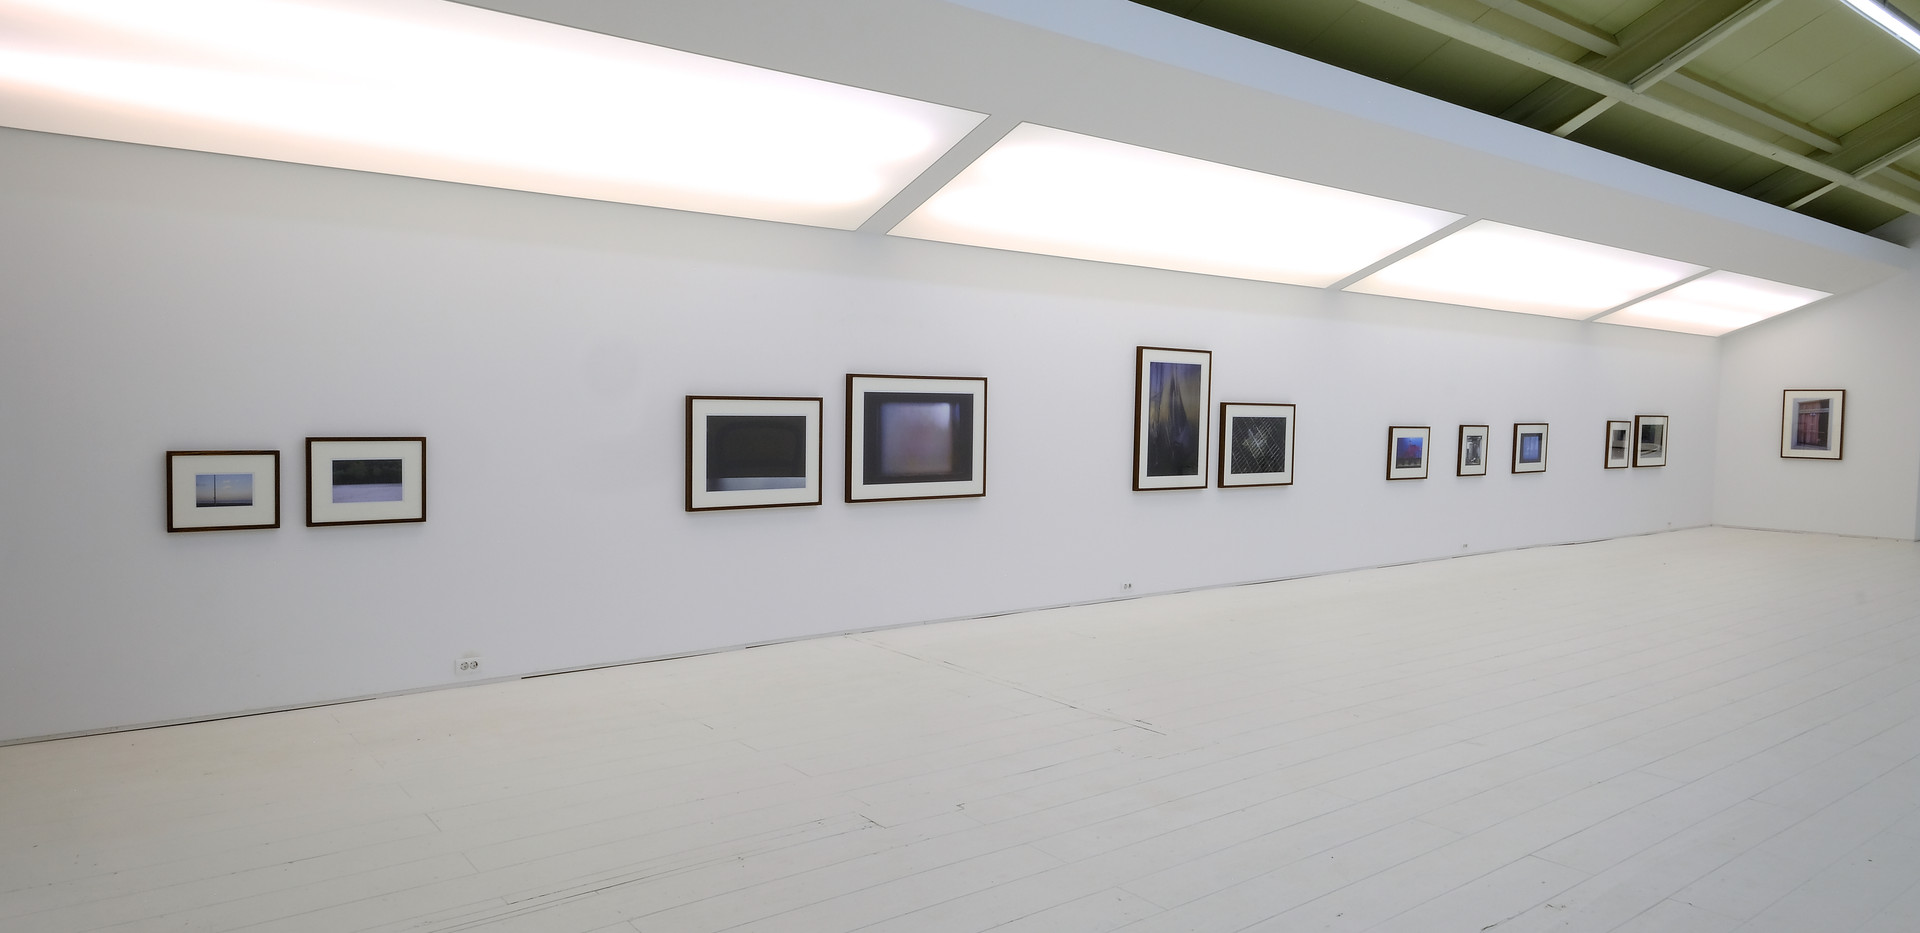 김영훈 installation view